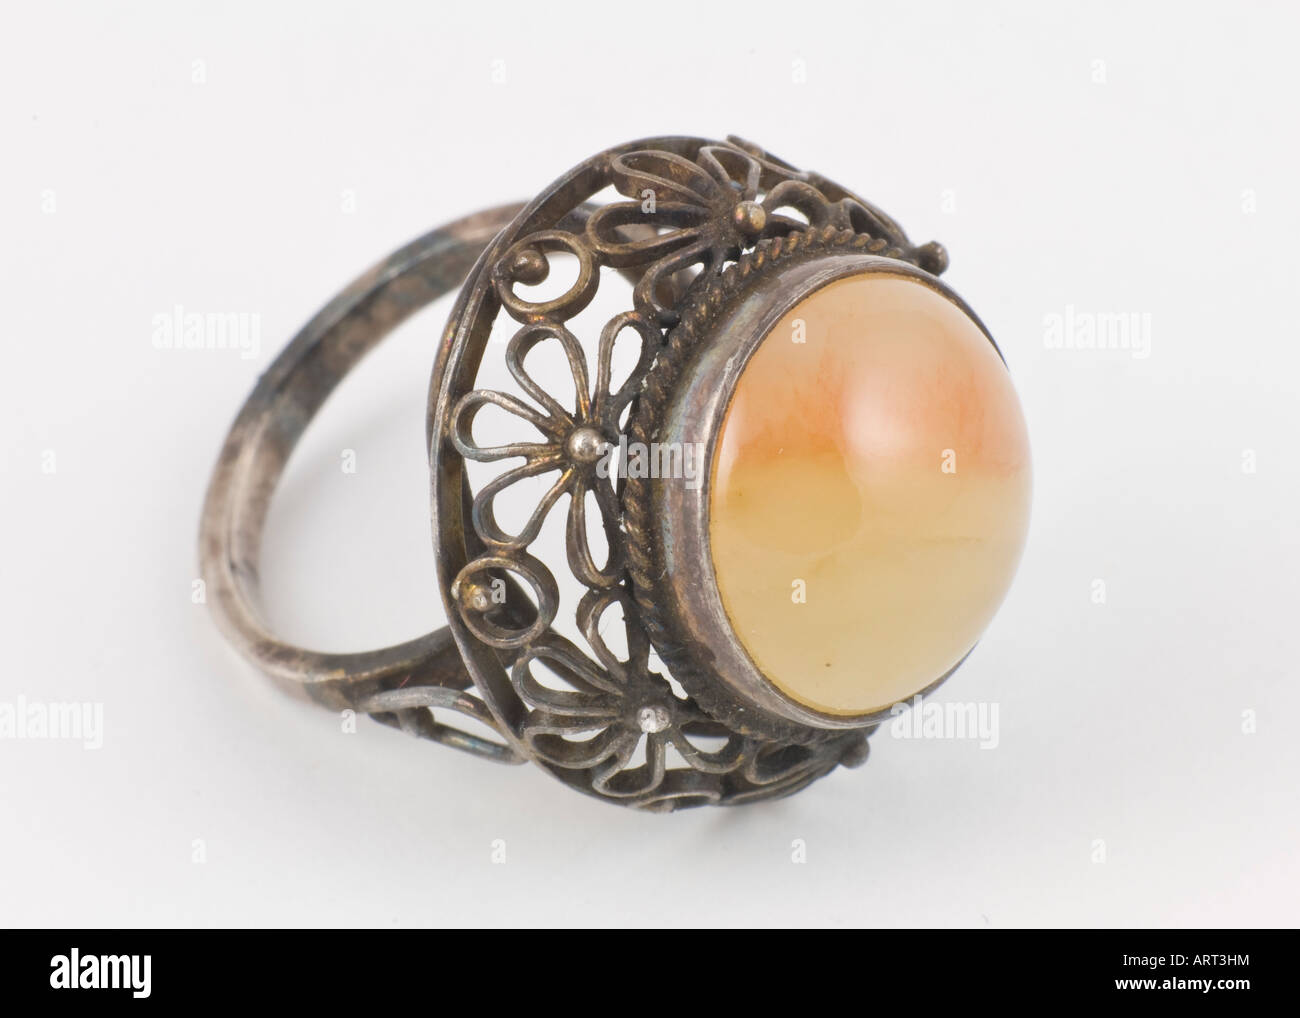 antique ring tarnished old jewelry - Stock Image